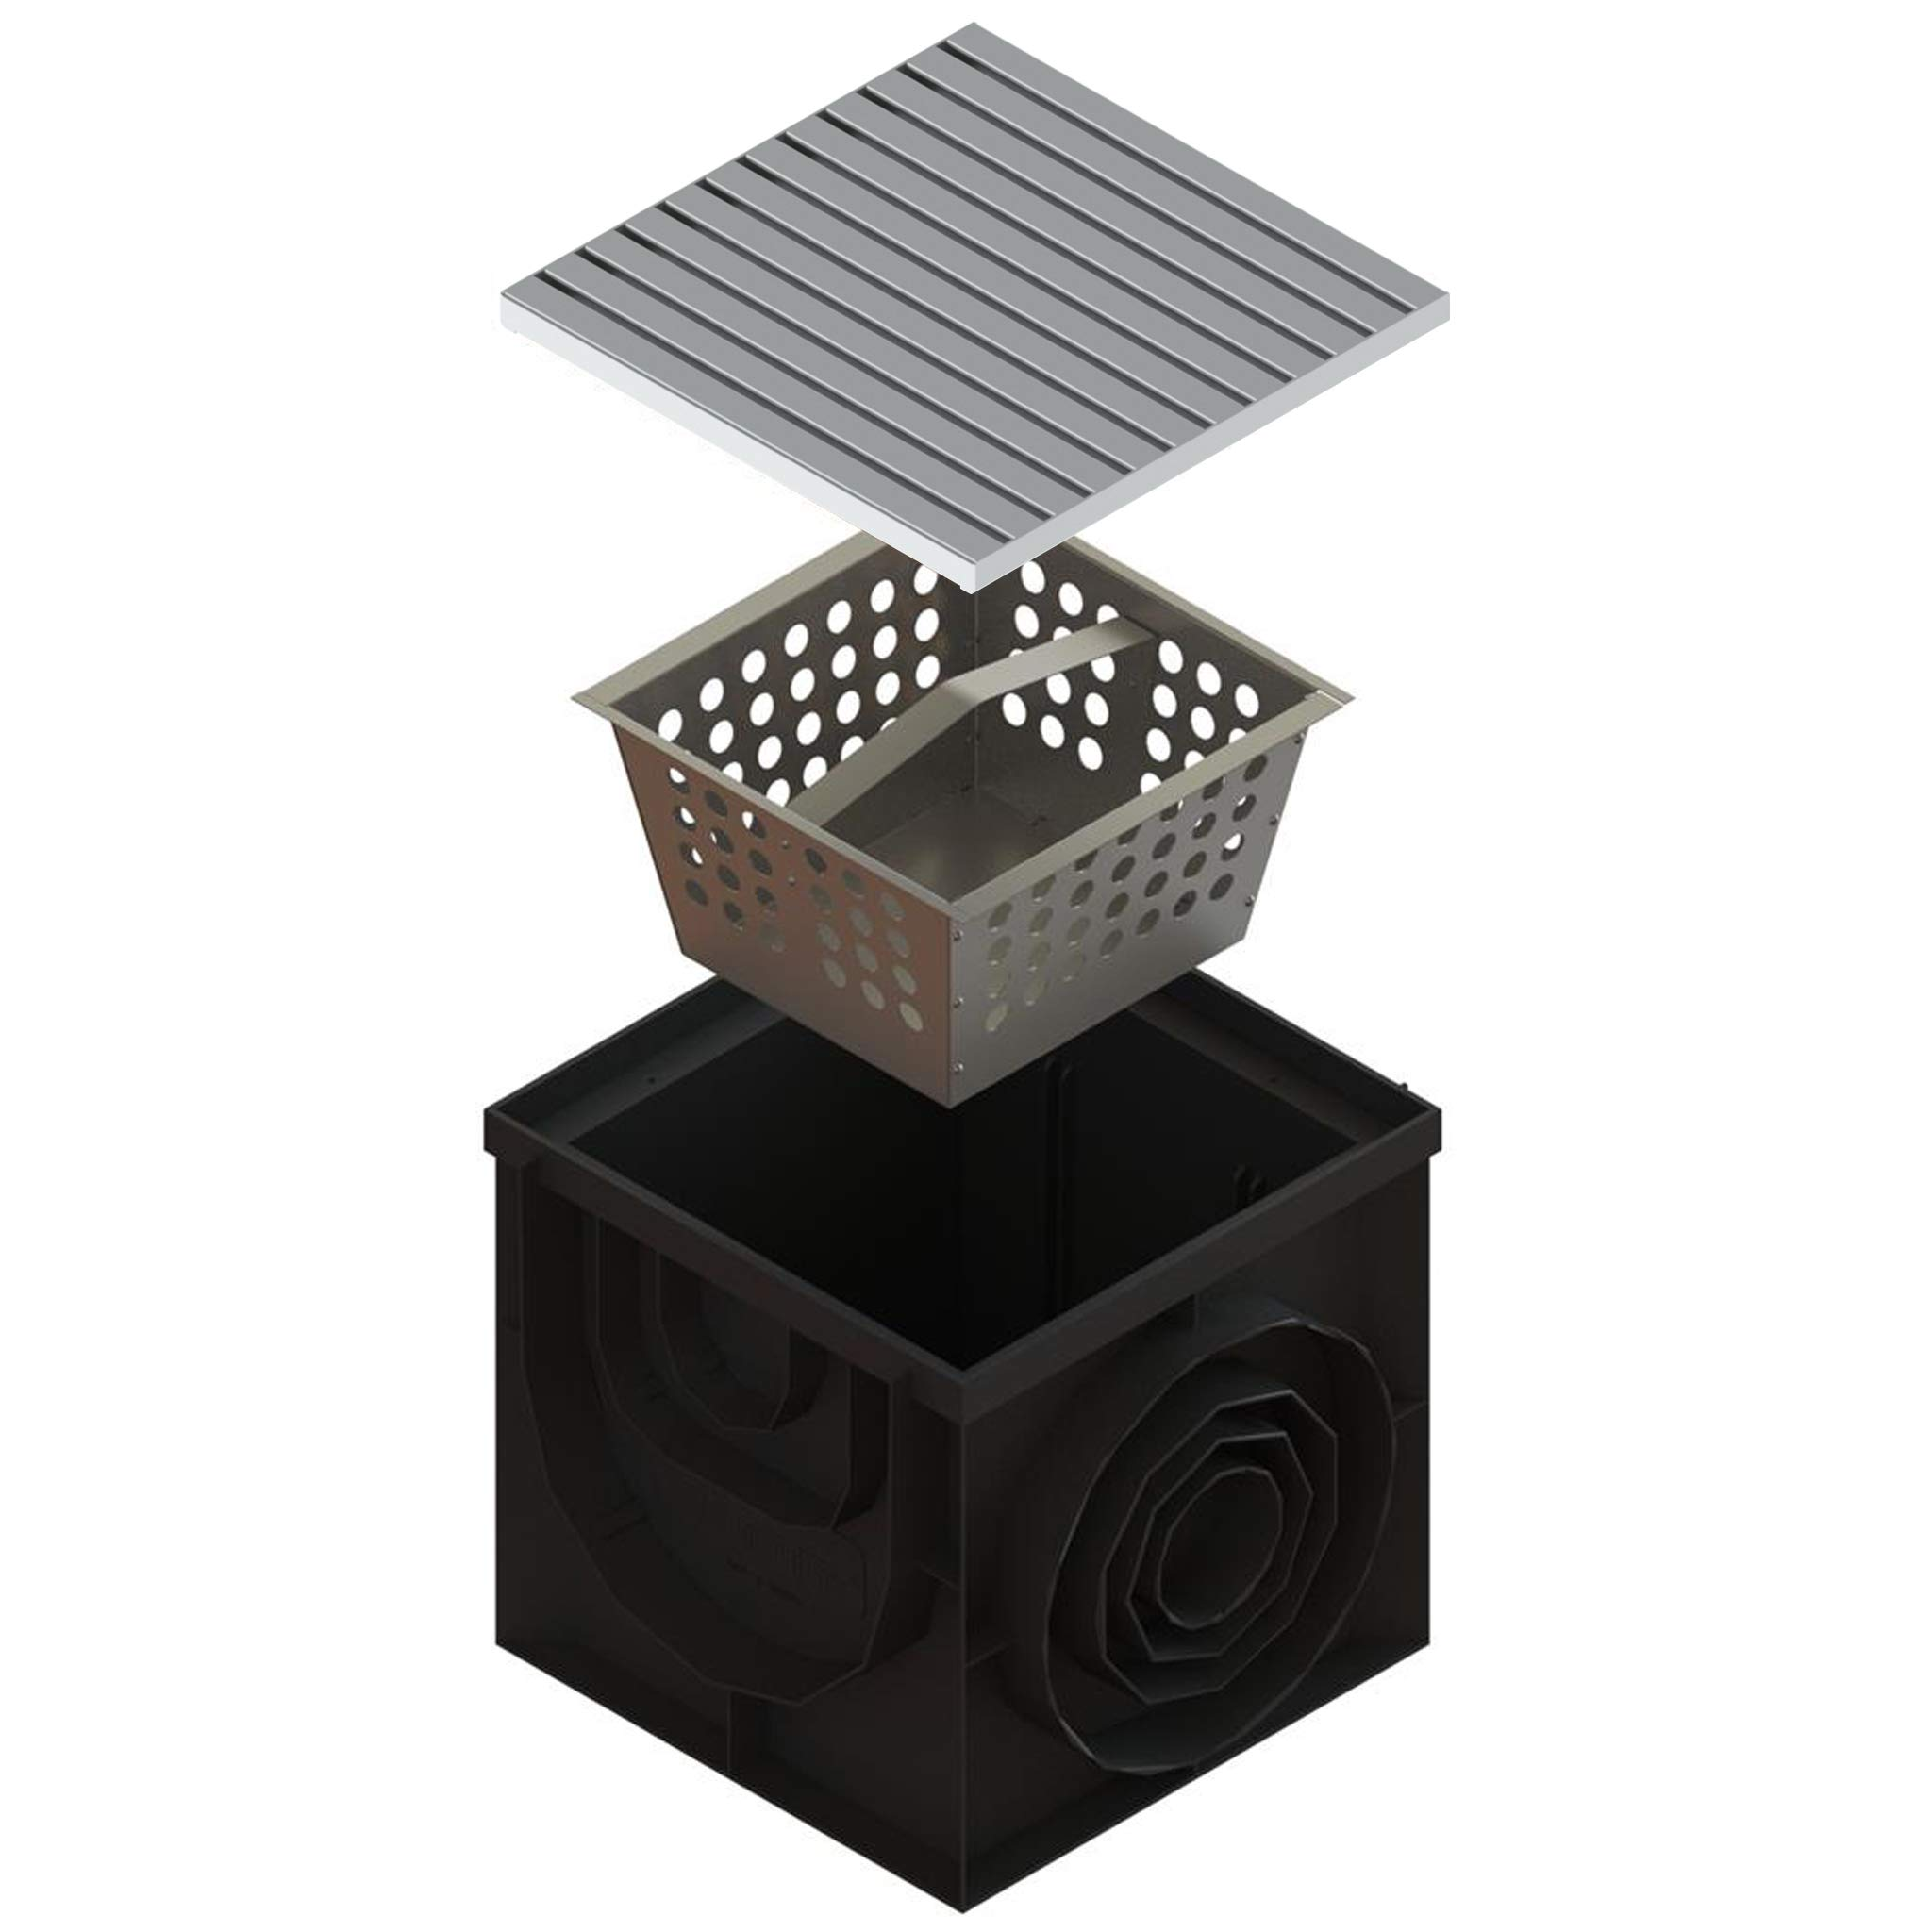 Standartpark - 16x16 Inch Catch Basin. PPE Plastic with 100% Stainless Steel - ADA/Heel Proof Grate and Sediment Basket Included. by Standartpark (Image #1)